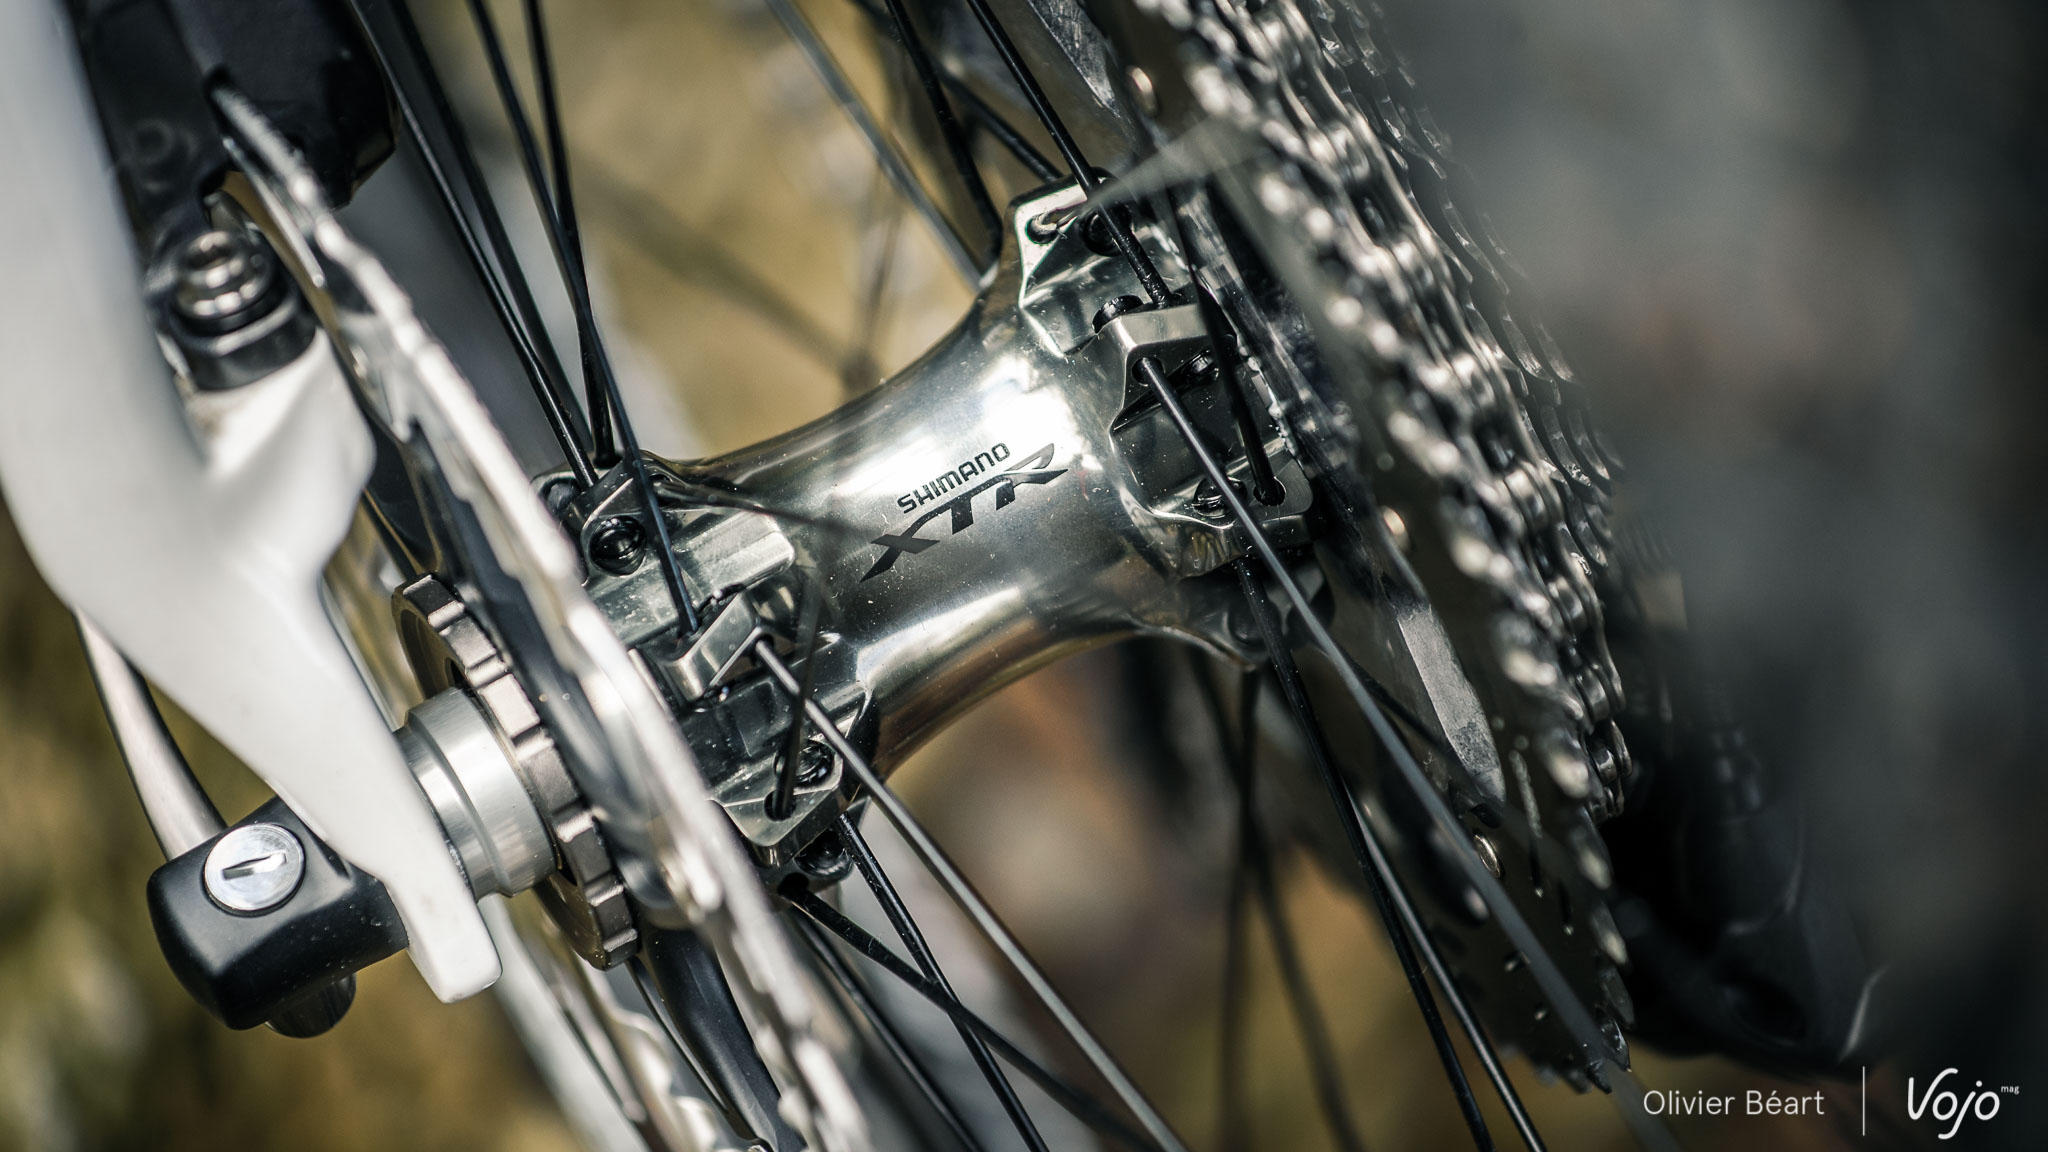 Shimano_XTR_Di2_Test_longue_duree_Copyright_Beart_VojoMag-1-8